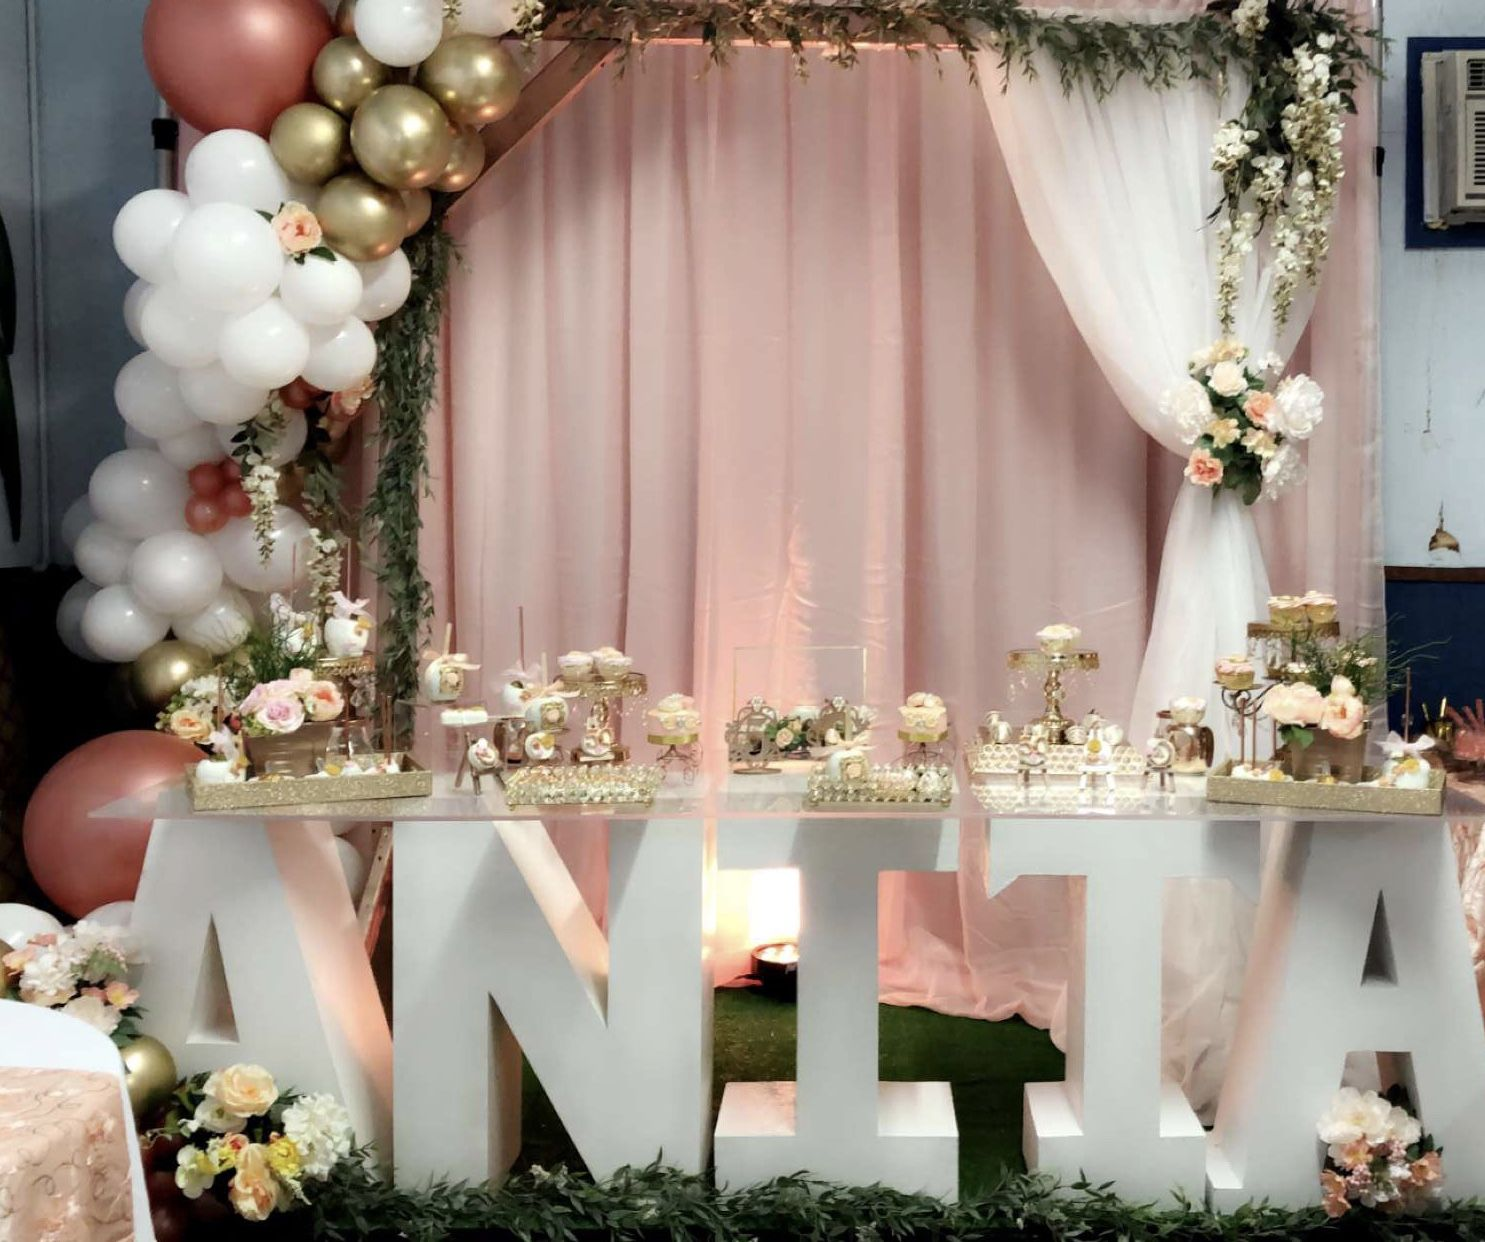 Pin by Wandaseventdesigns on Garland balloons (With images